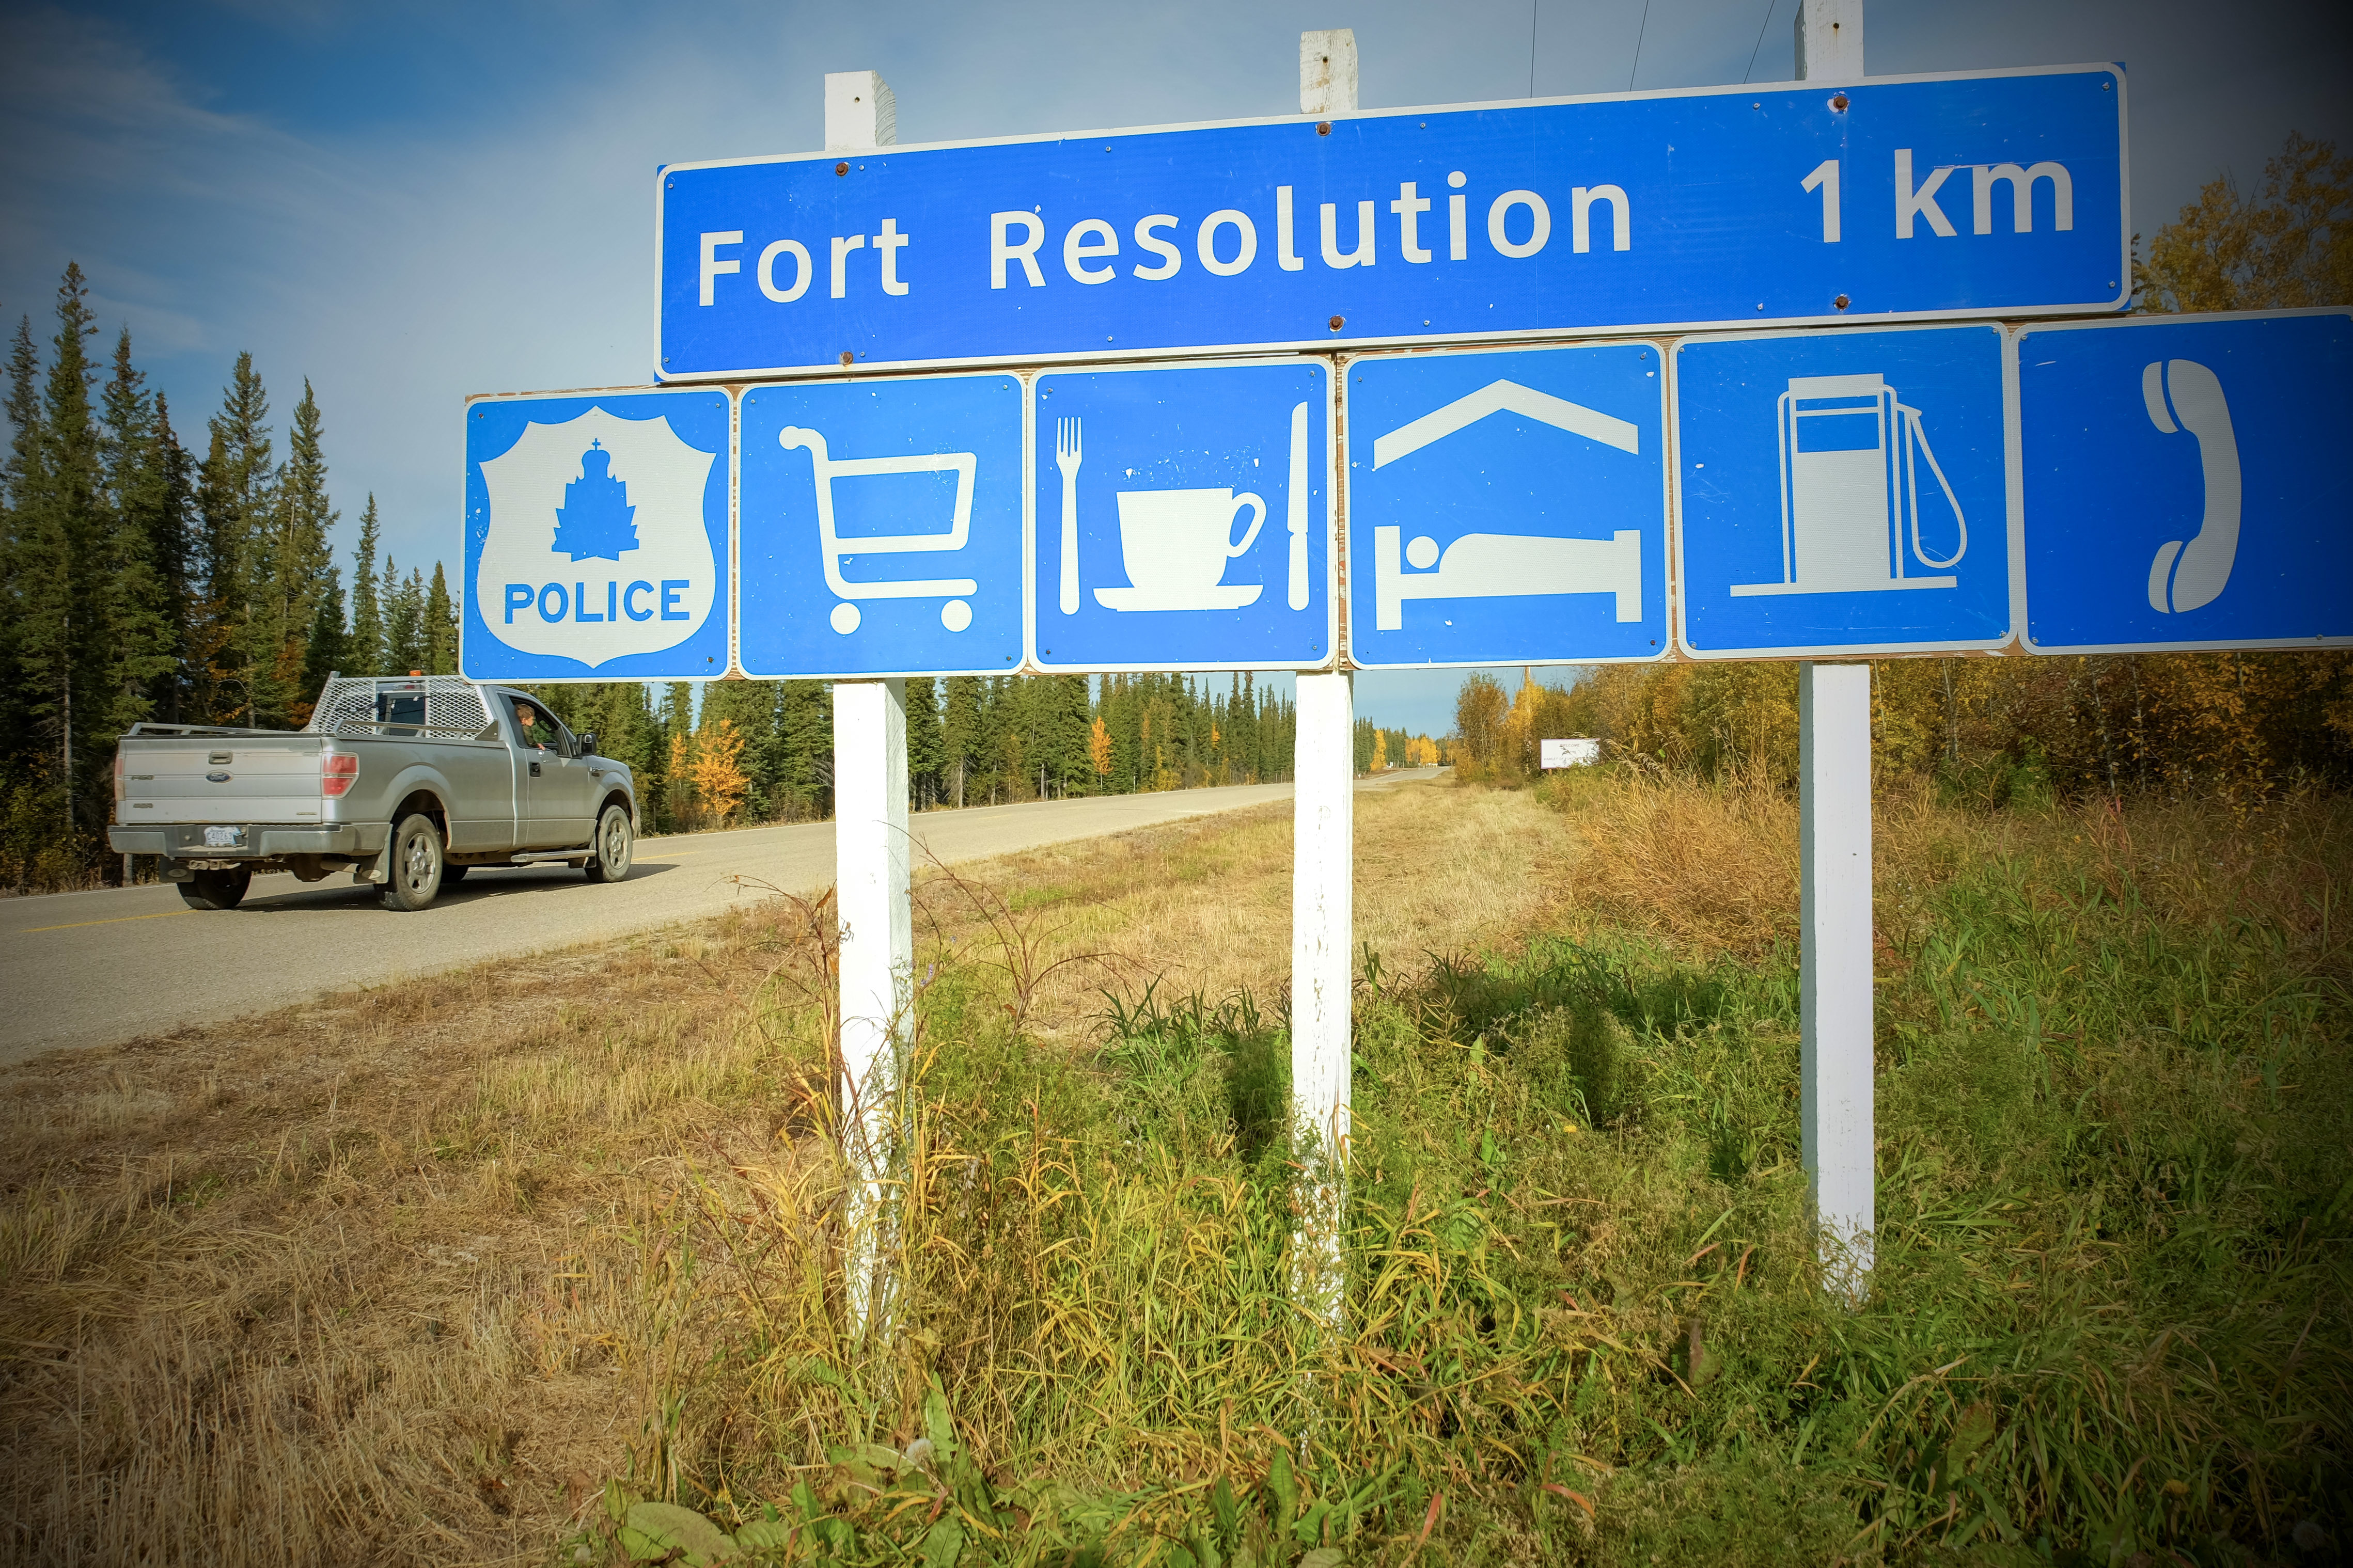 Work is hard to come by in Fort Resolution, but the hamlet is trying to create opportunities. (Graham Shishkov/CBC)